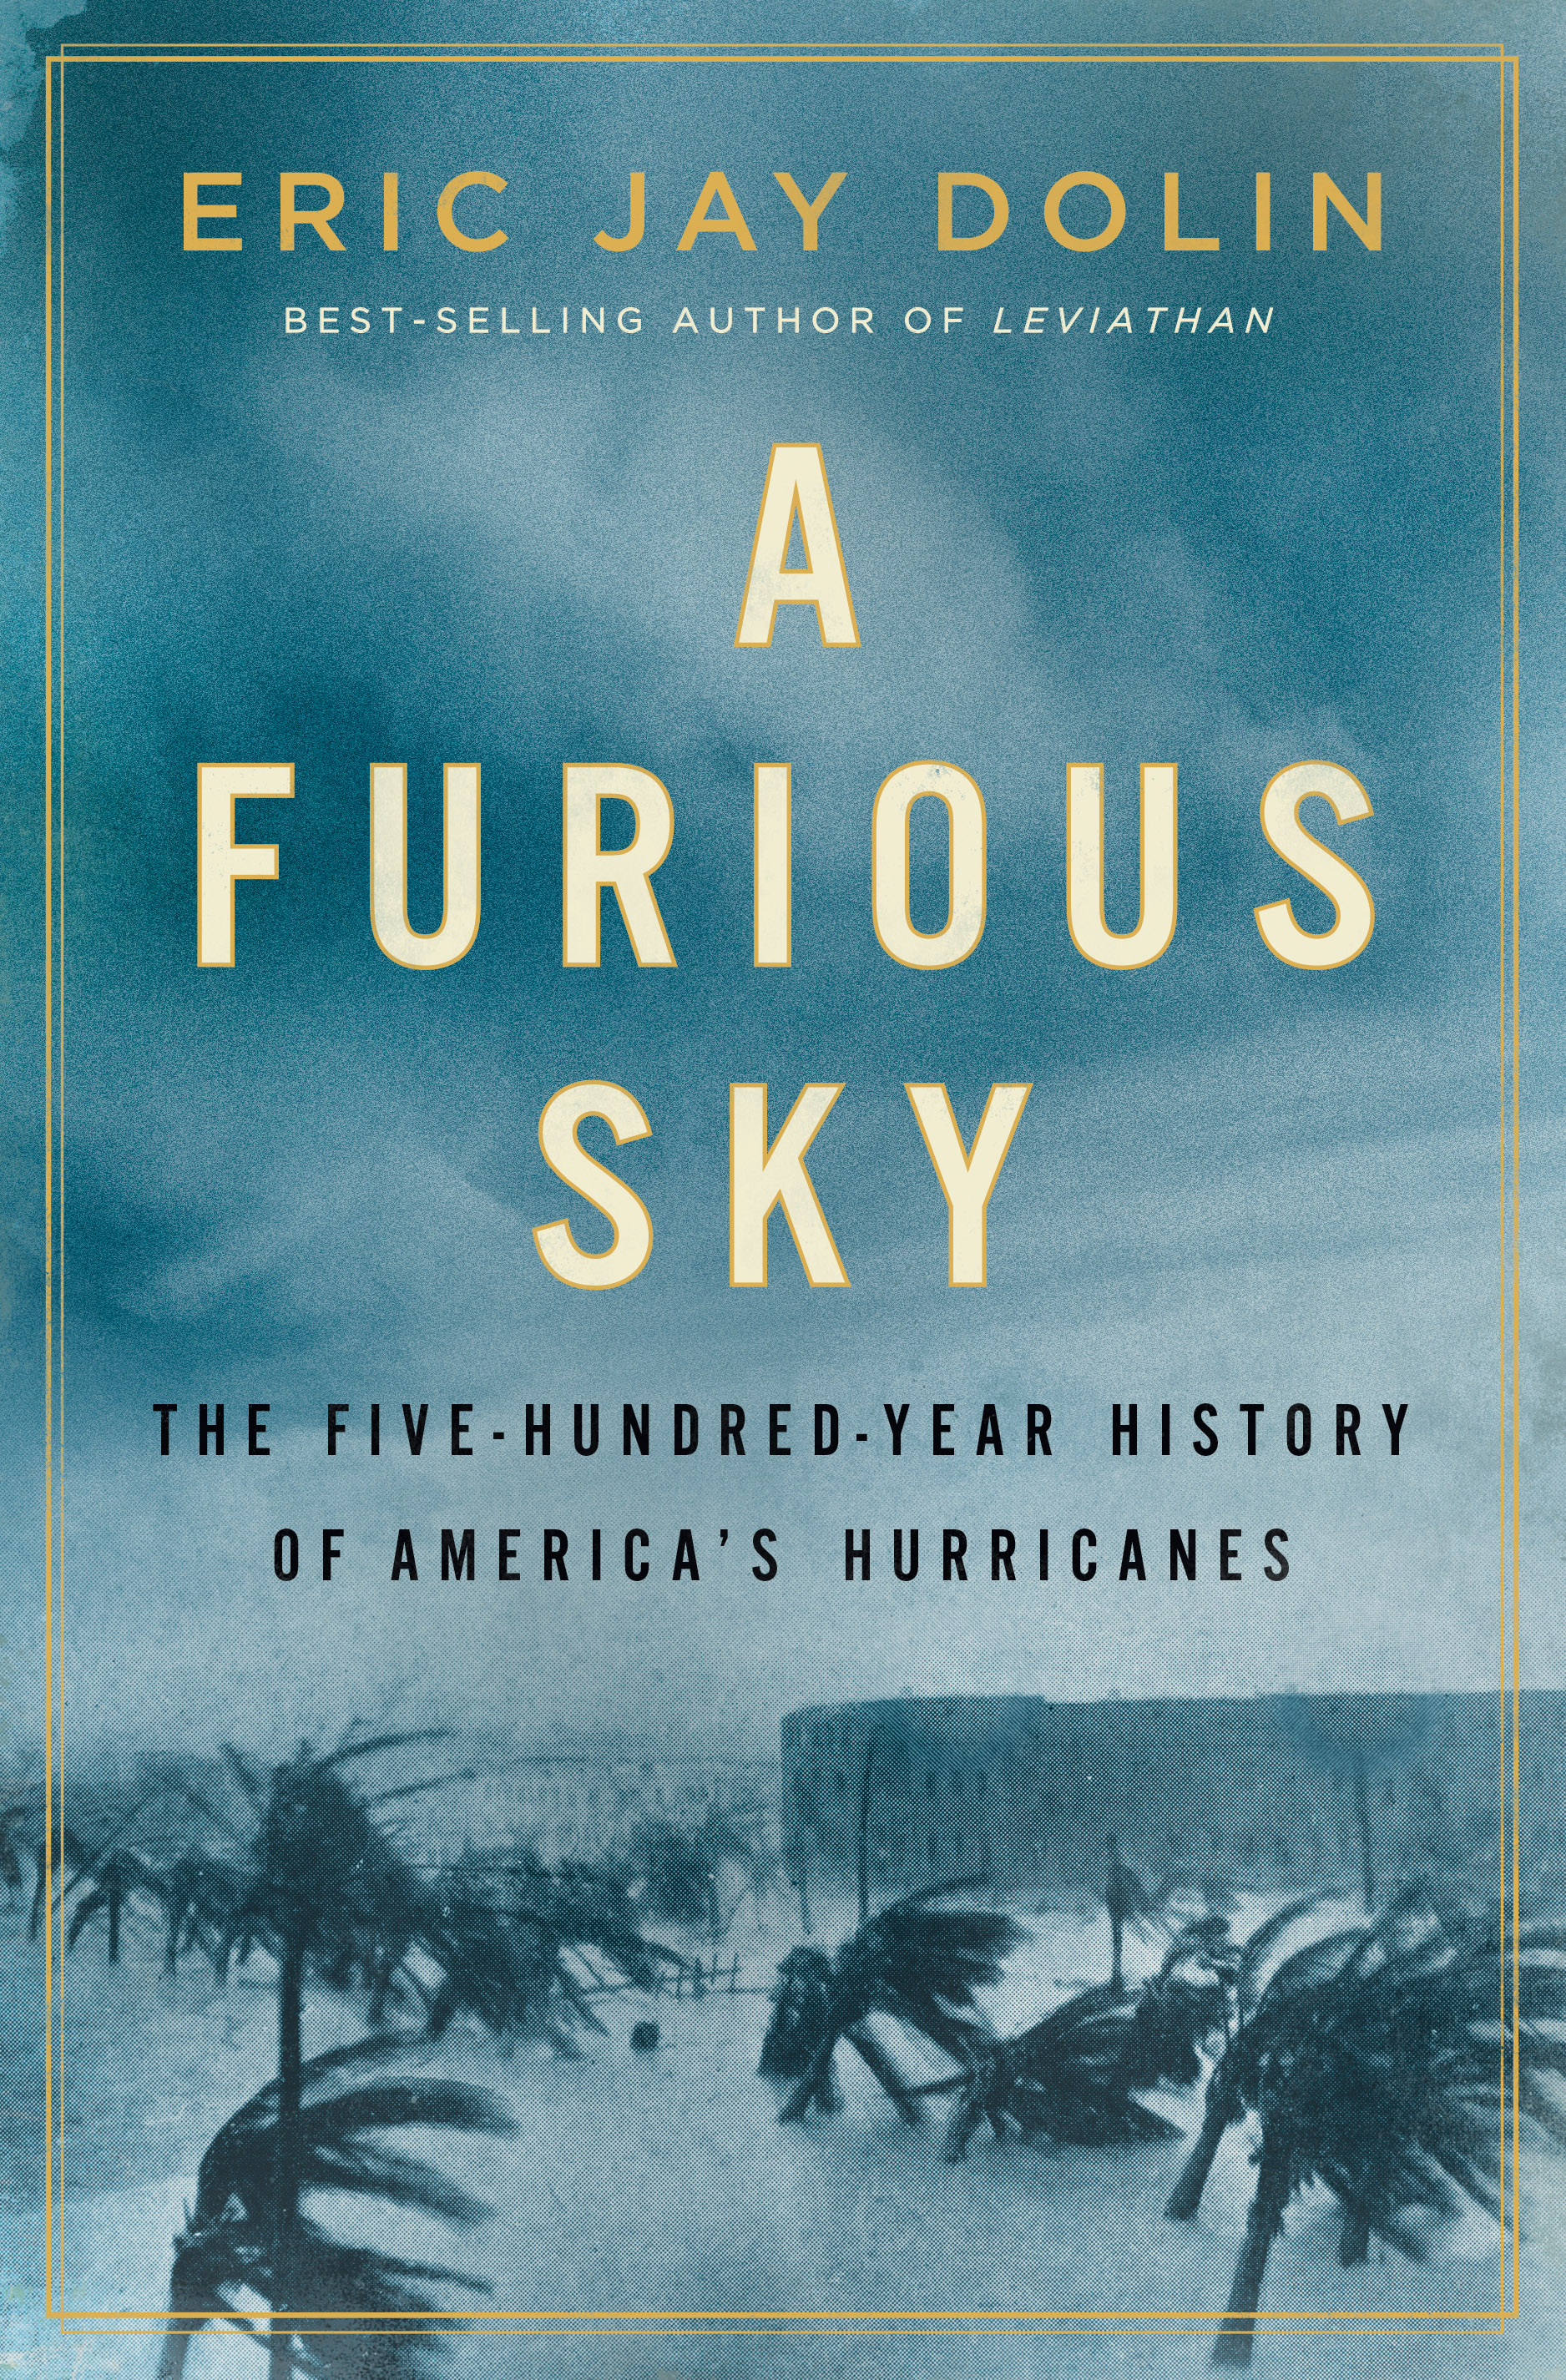 A Furious Sky: The Five-Hundred Year History of America's Hurricanes with historian Eric Jay Dolin